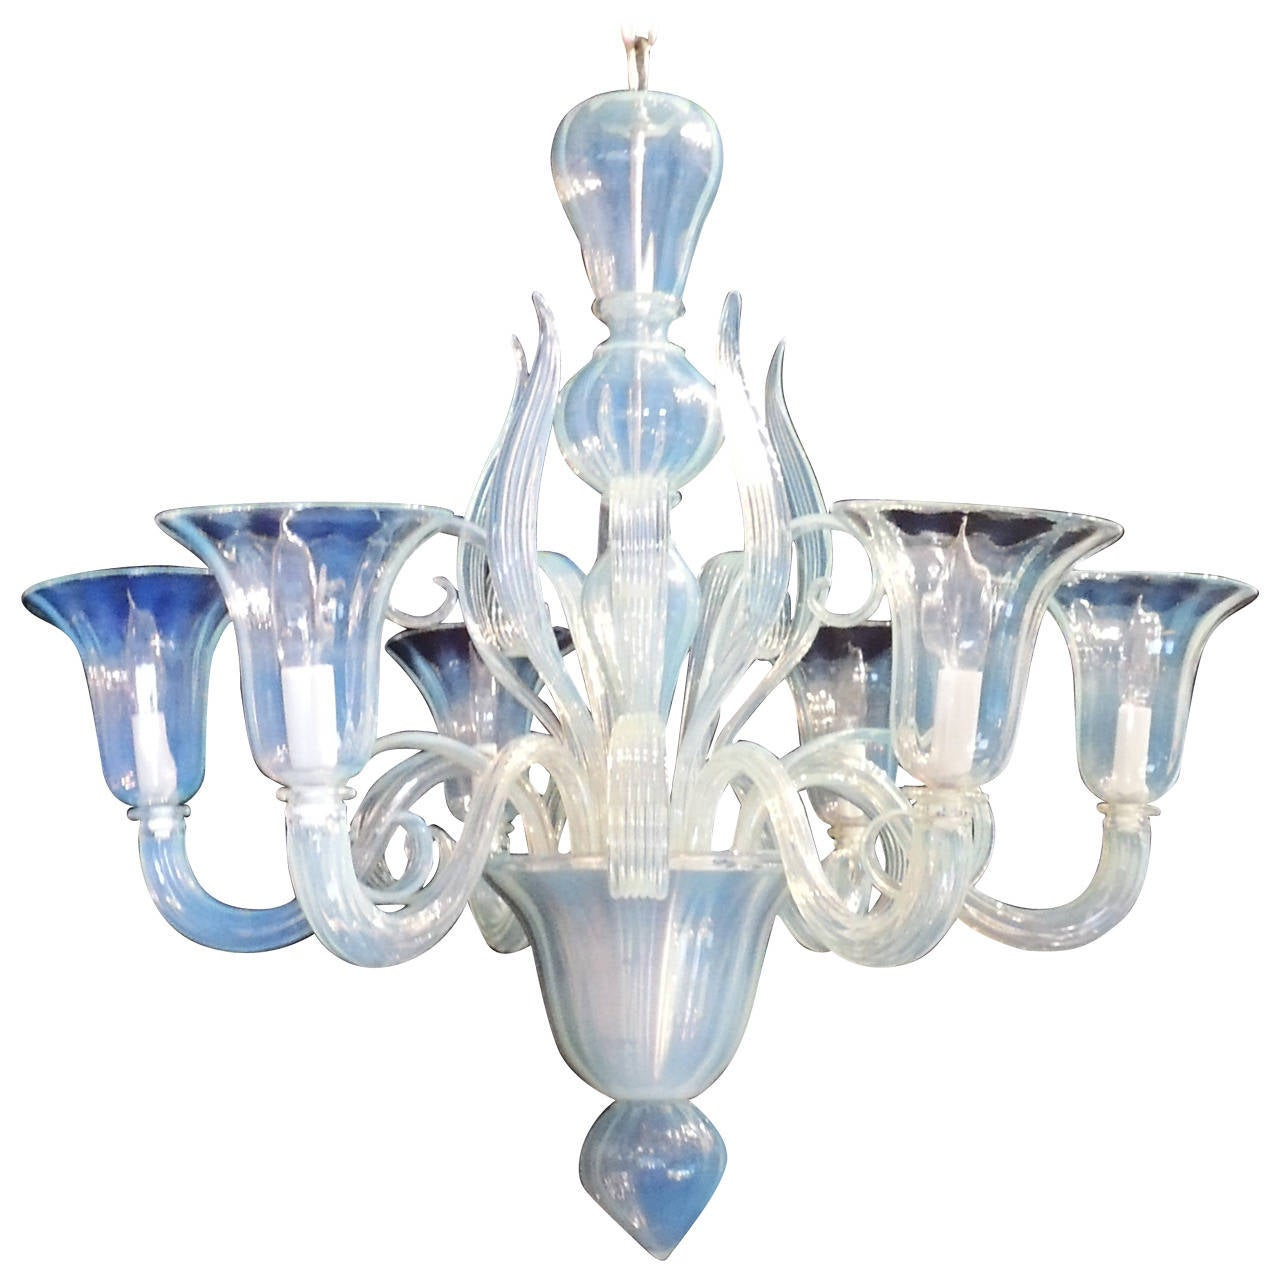 Vintage modern transitional opalescent venetian murano glass vintage modern transitional opalescent venetian murano glass chandelier fixture for sale aloadofball Image collections